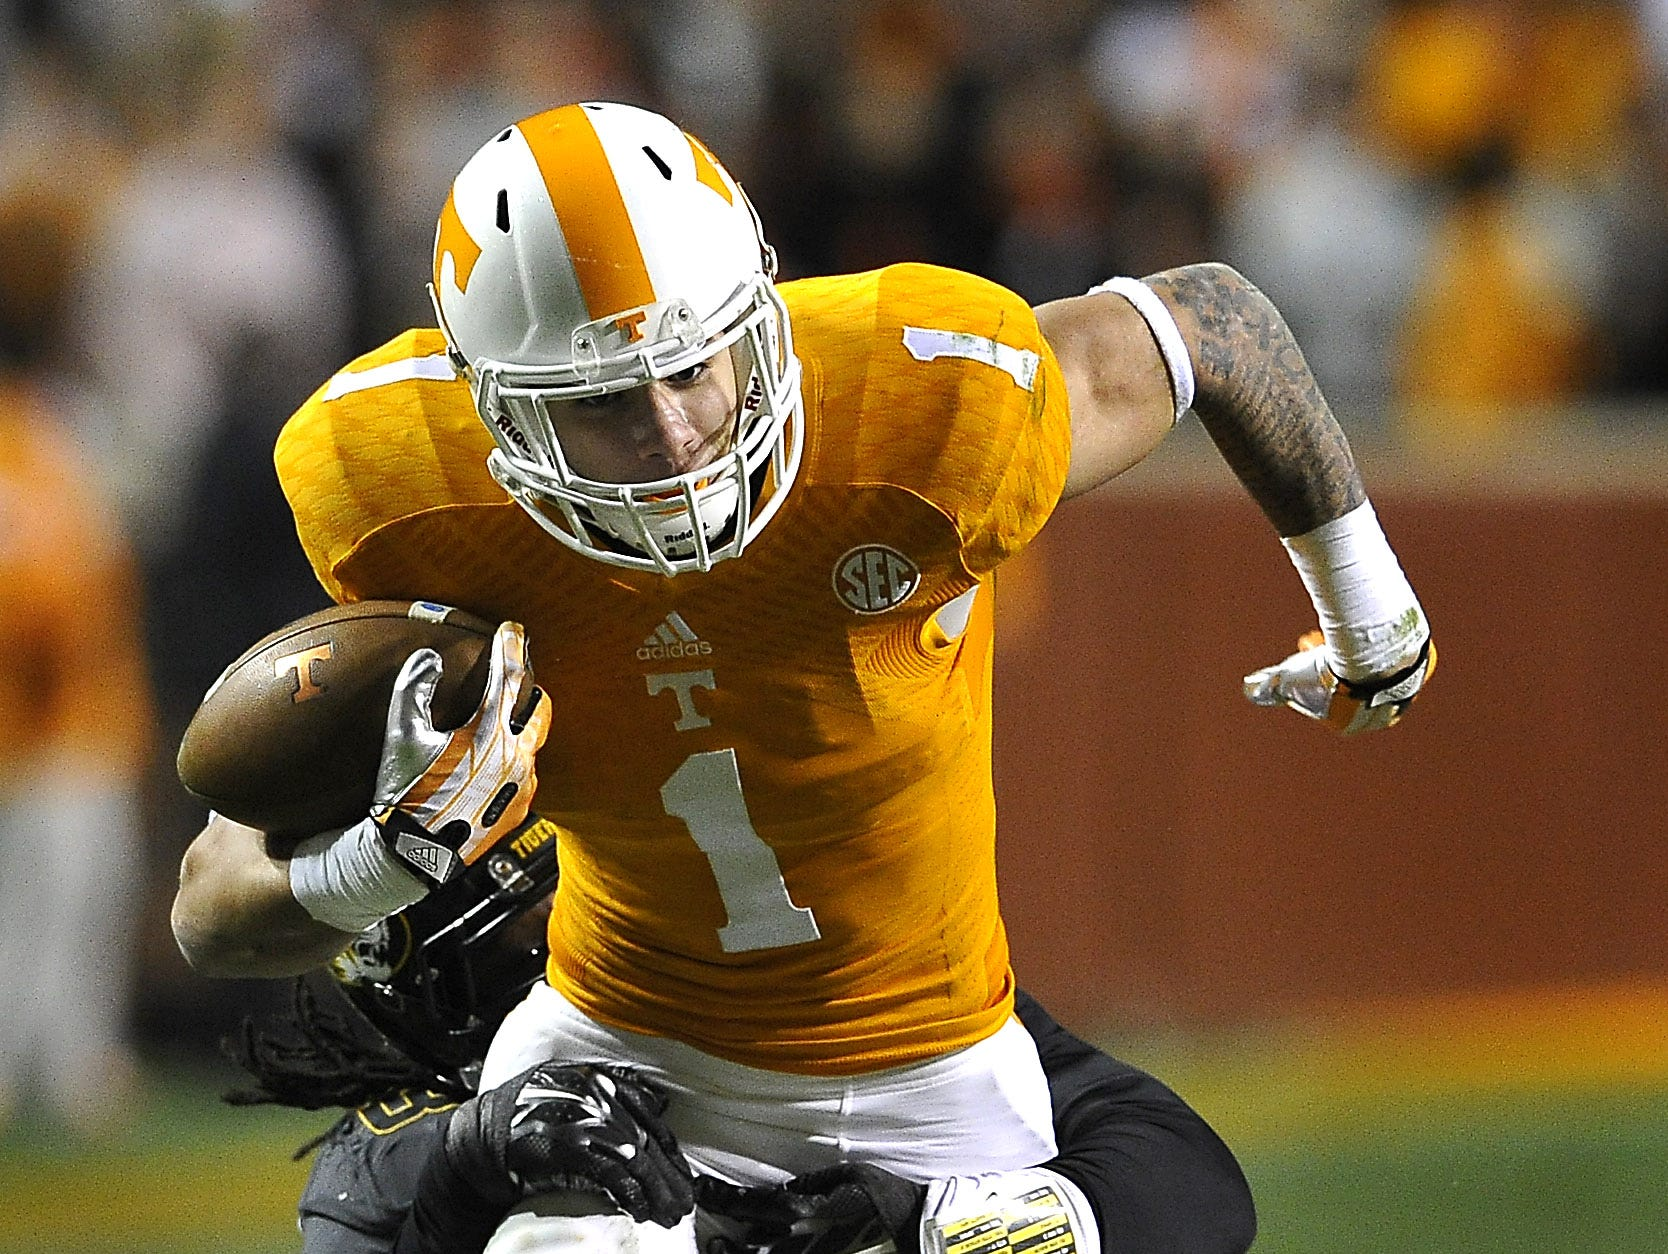 Jalen Hurd moves the ball in a 2014 game at Neyland Stadium.